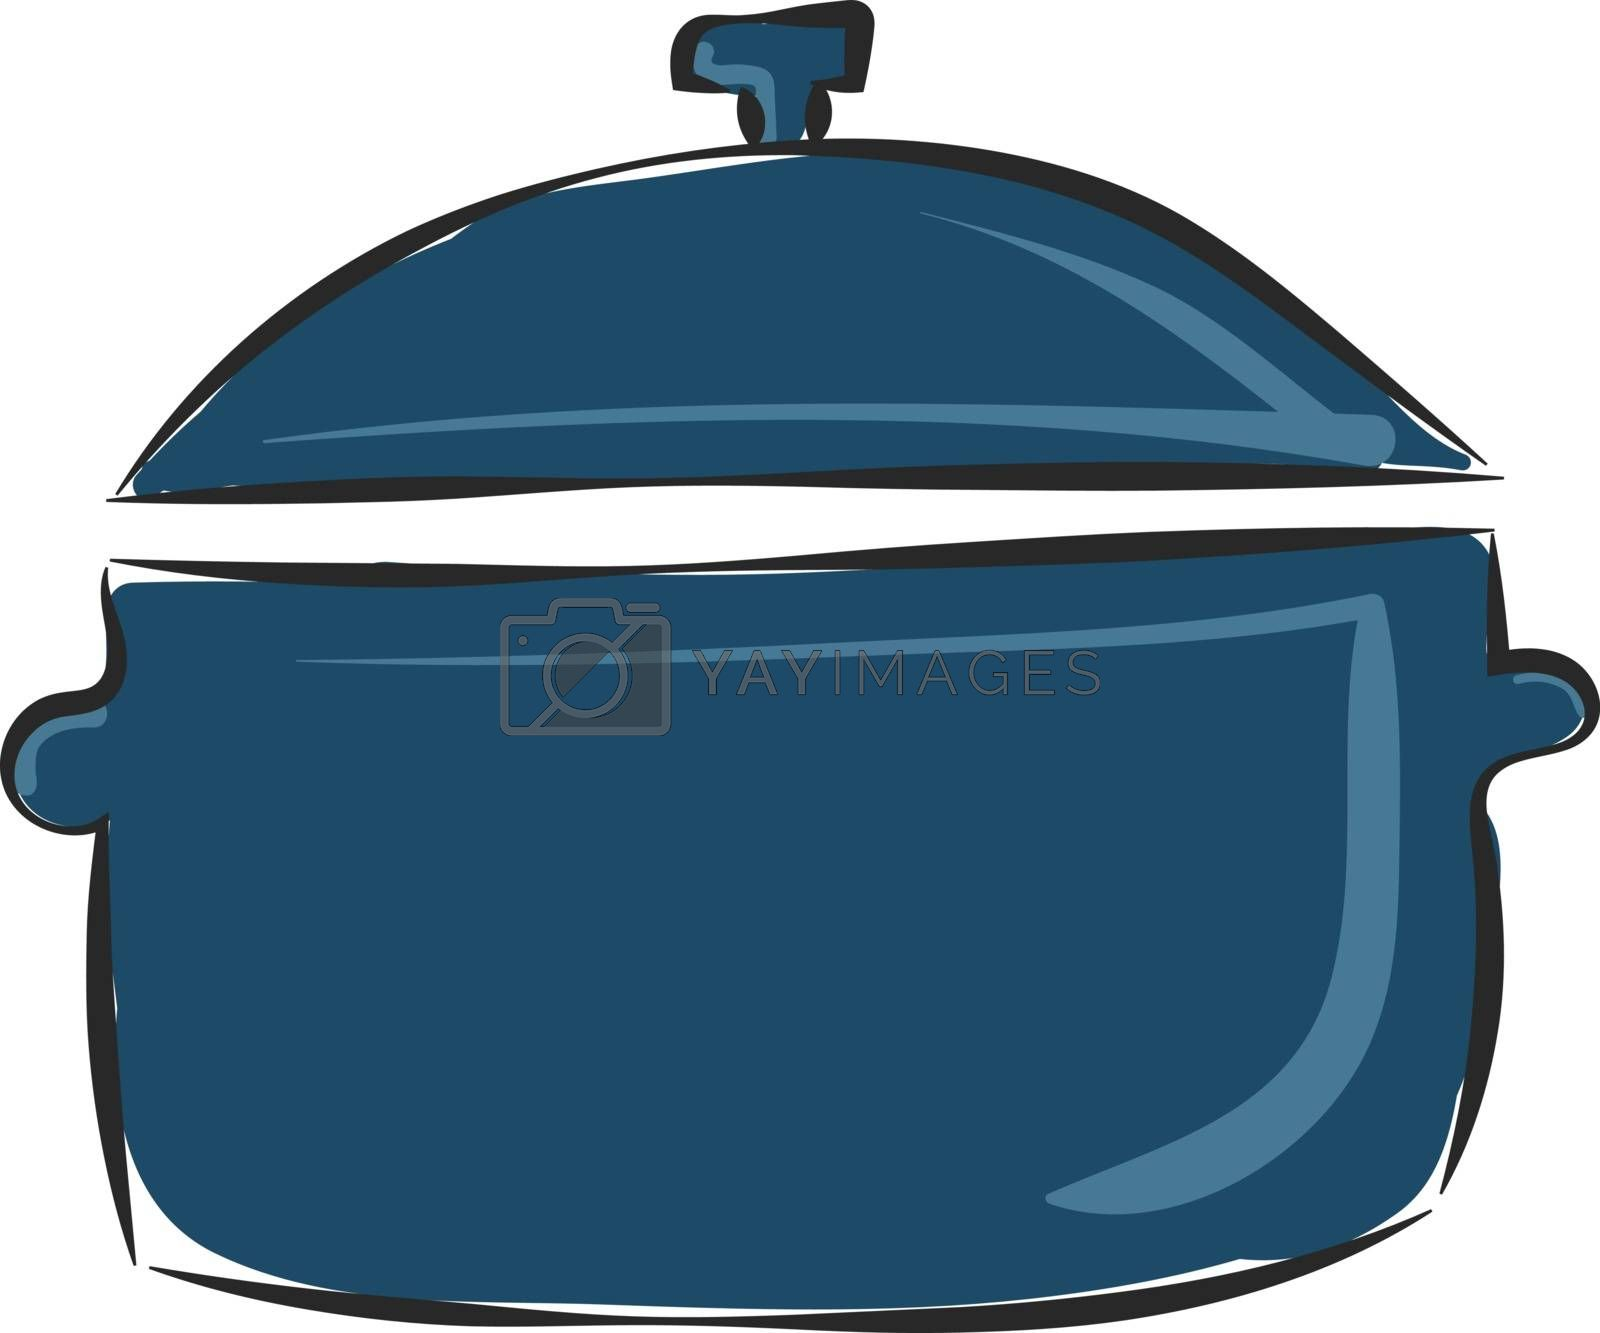 Royalty free image of Clipart of a blue-colored non-stick saucepan provided with a lid by Morphart